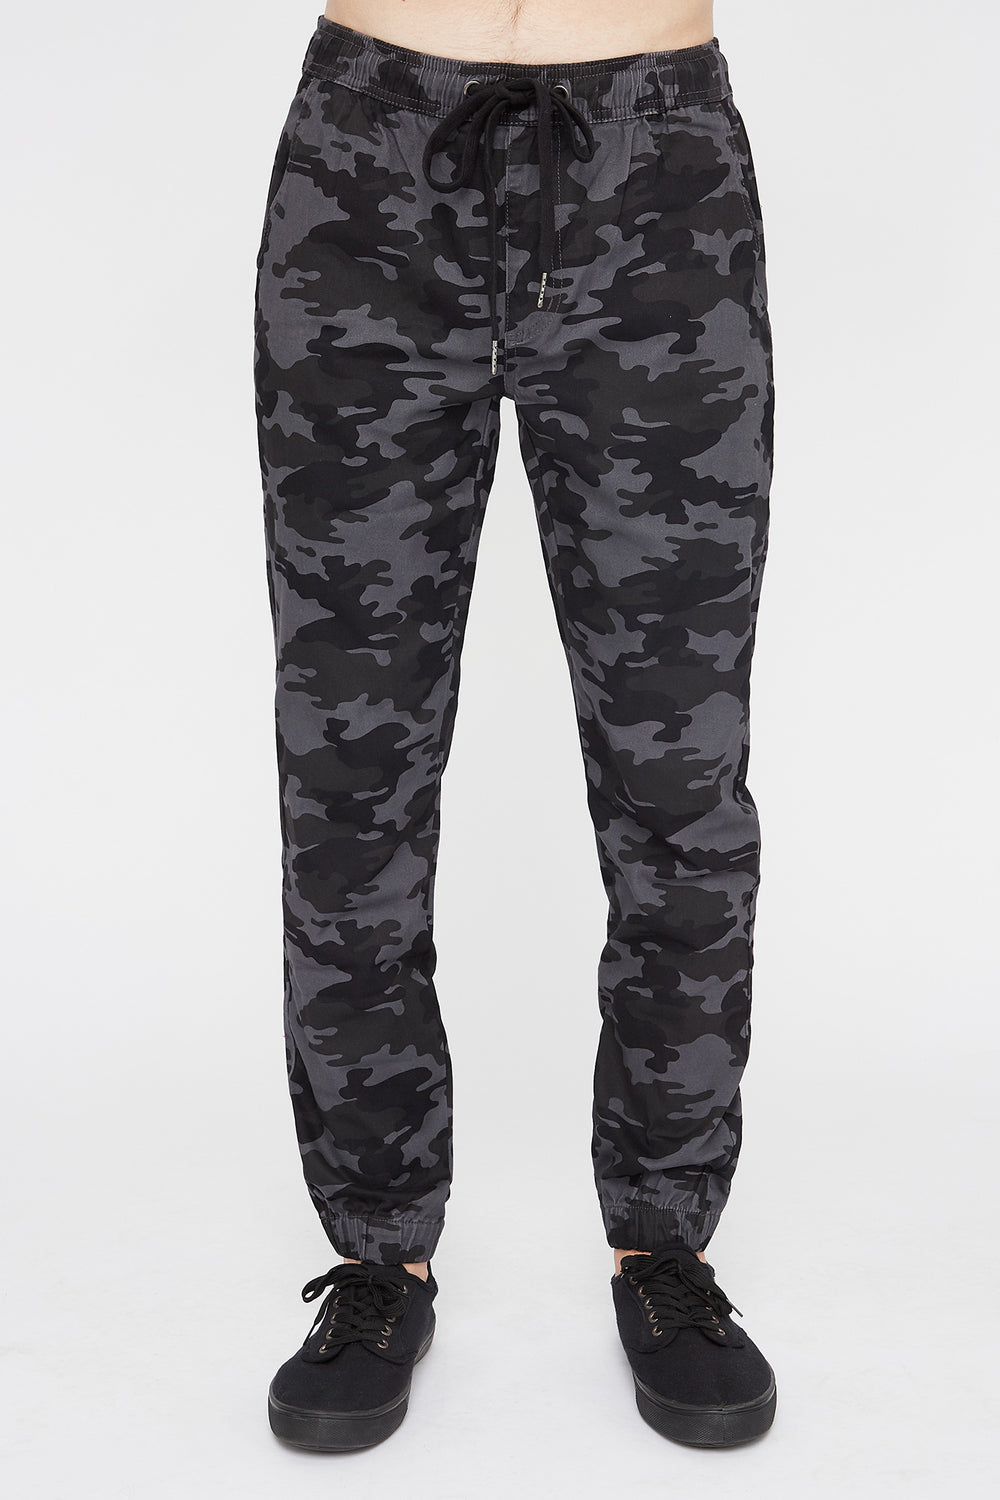 West49 Mens Camo Jogger Gingham